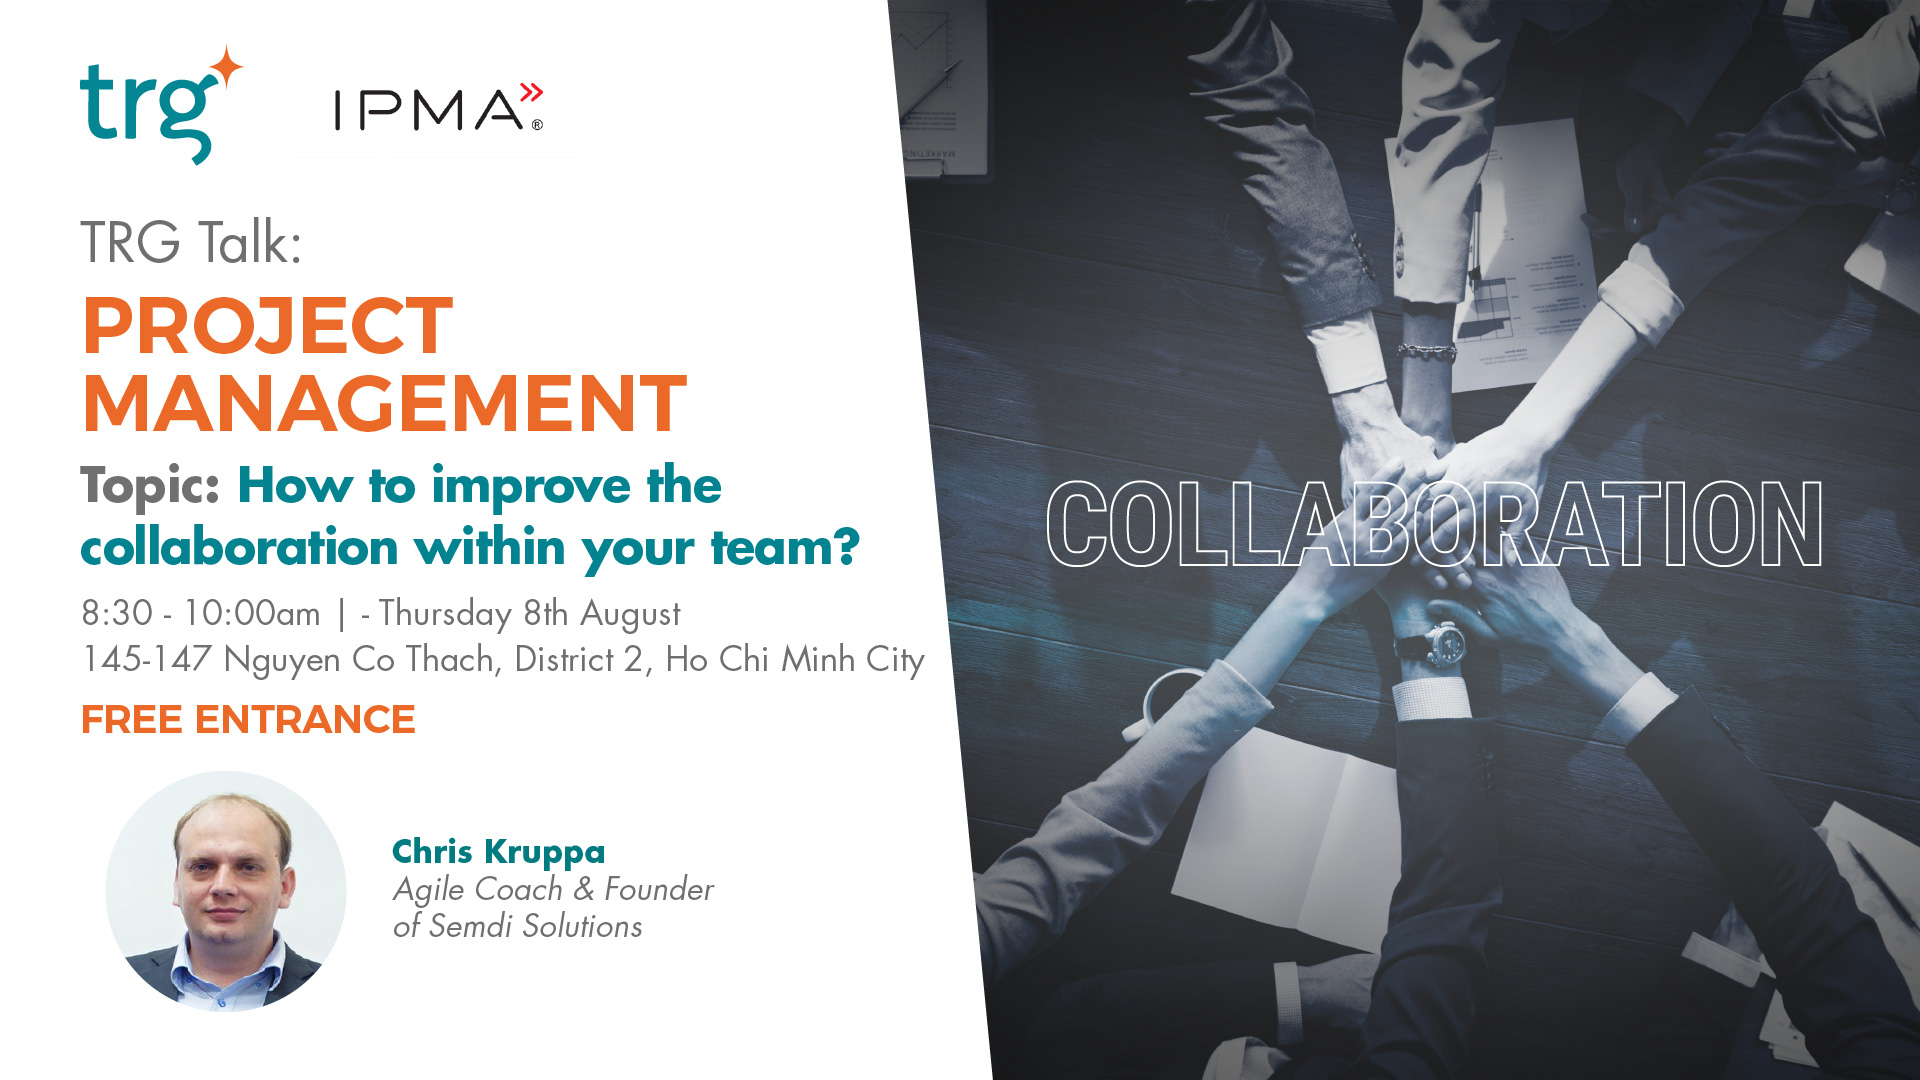 TRG Talk Project Management This August Brings The Topic of Team Collaboration On Stage